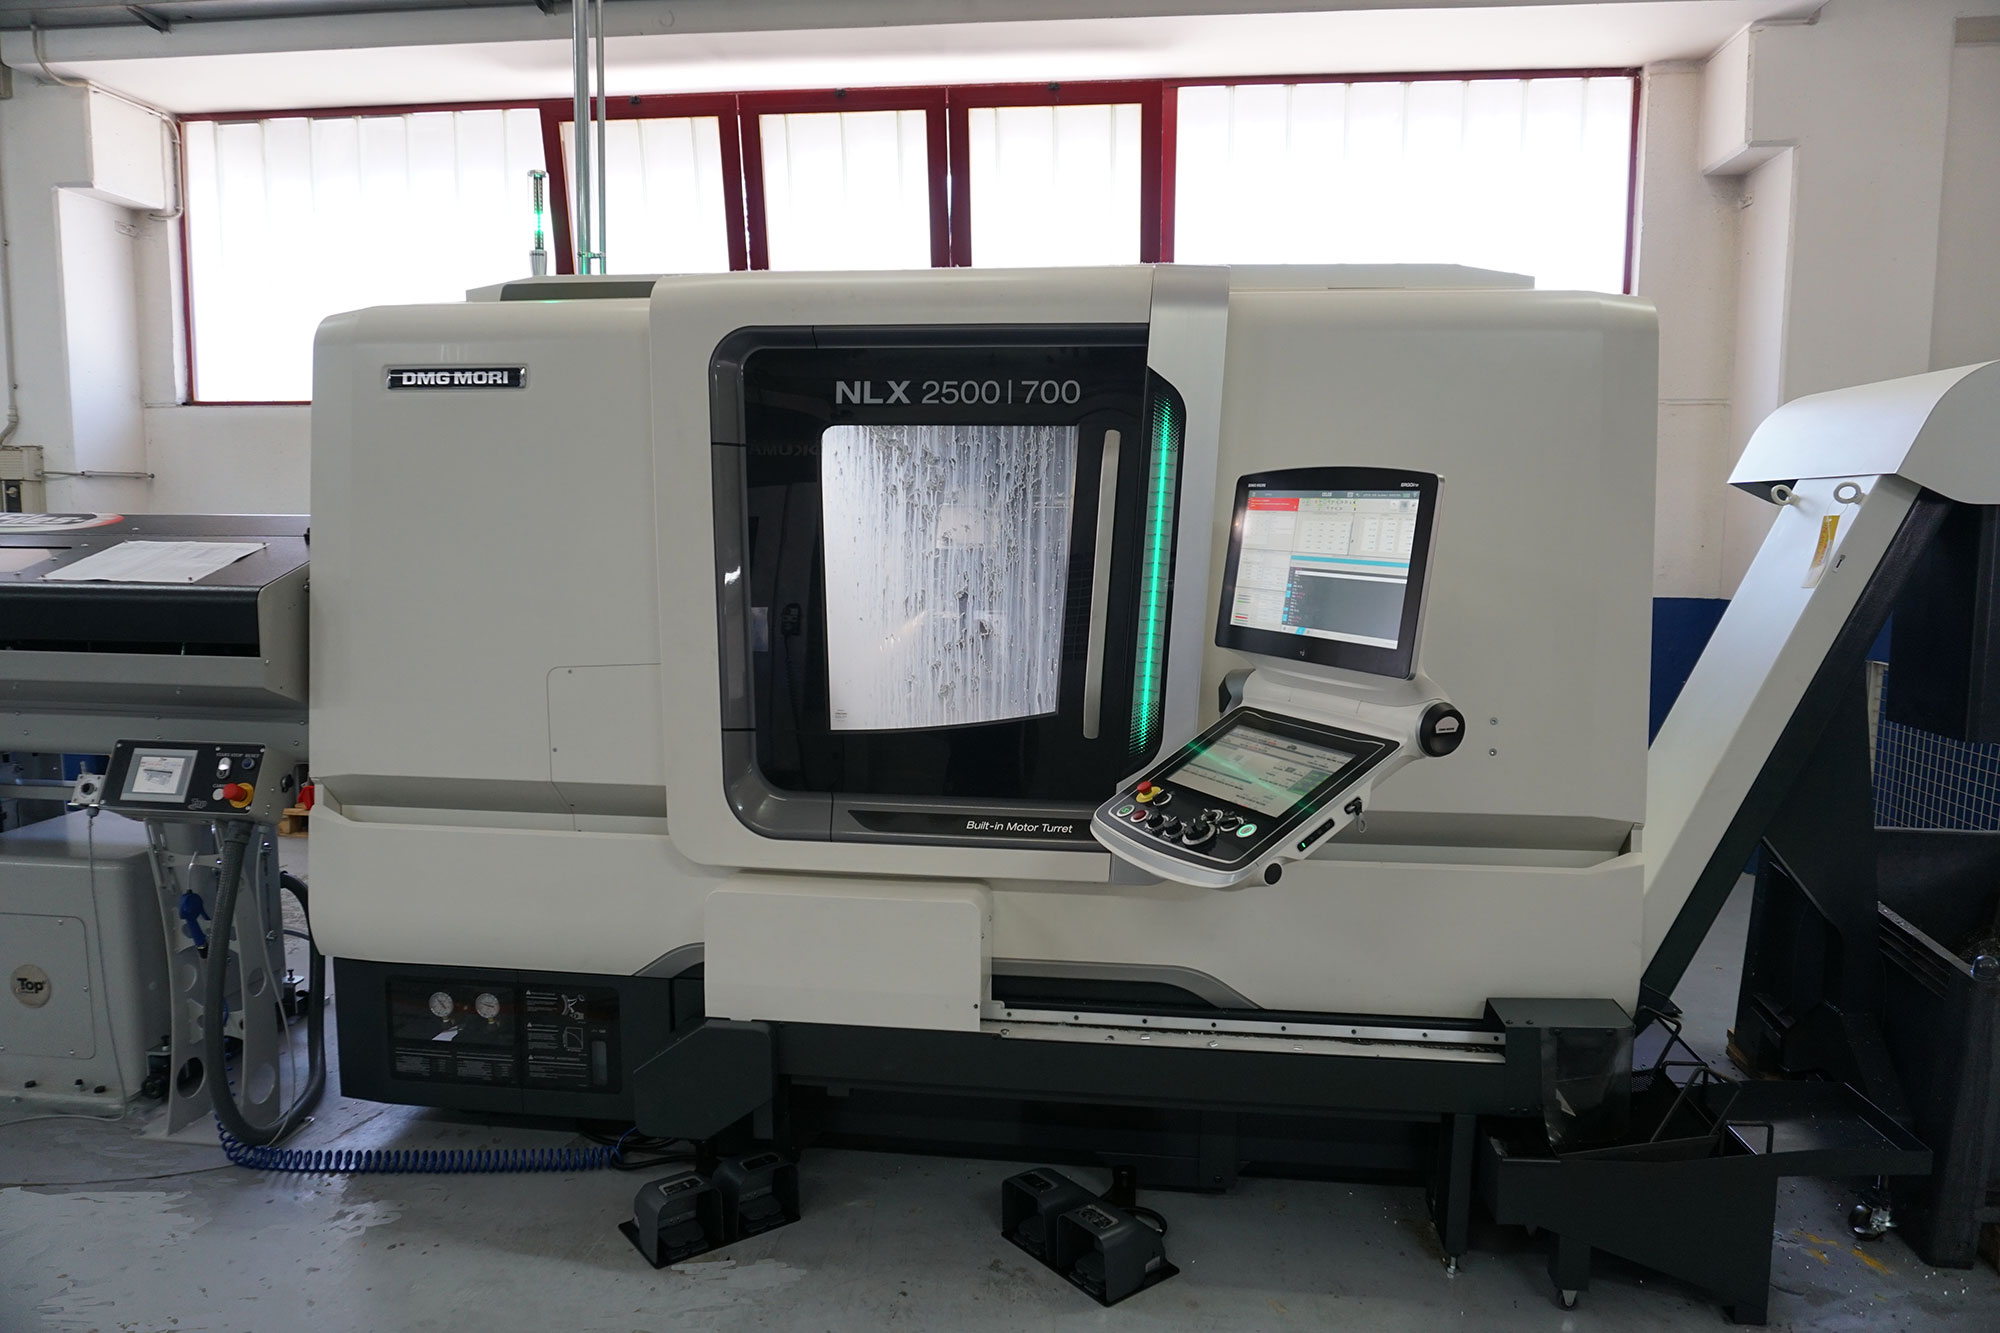 IPK, new numerical control lathe. Technology at the service of quality